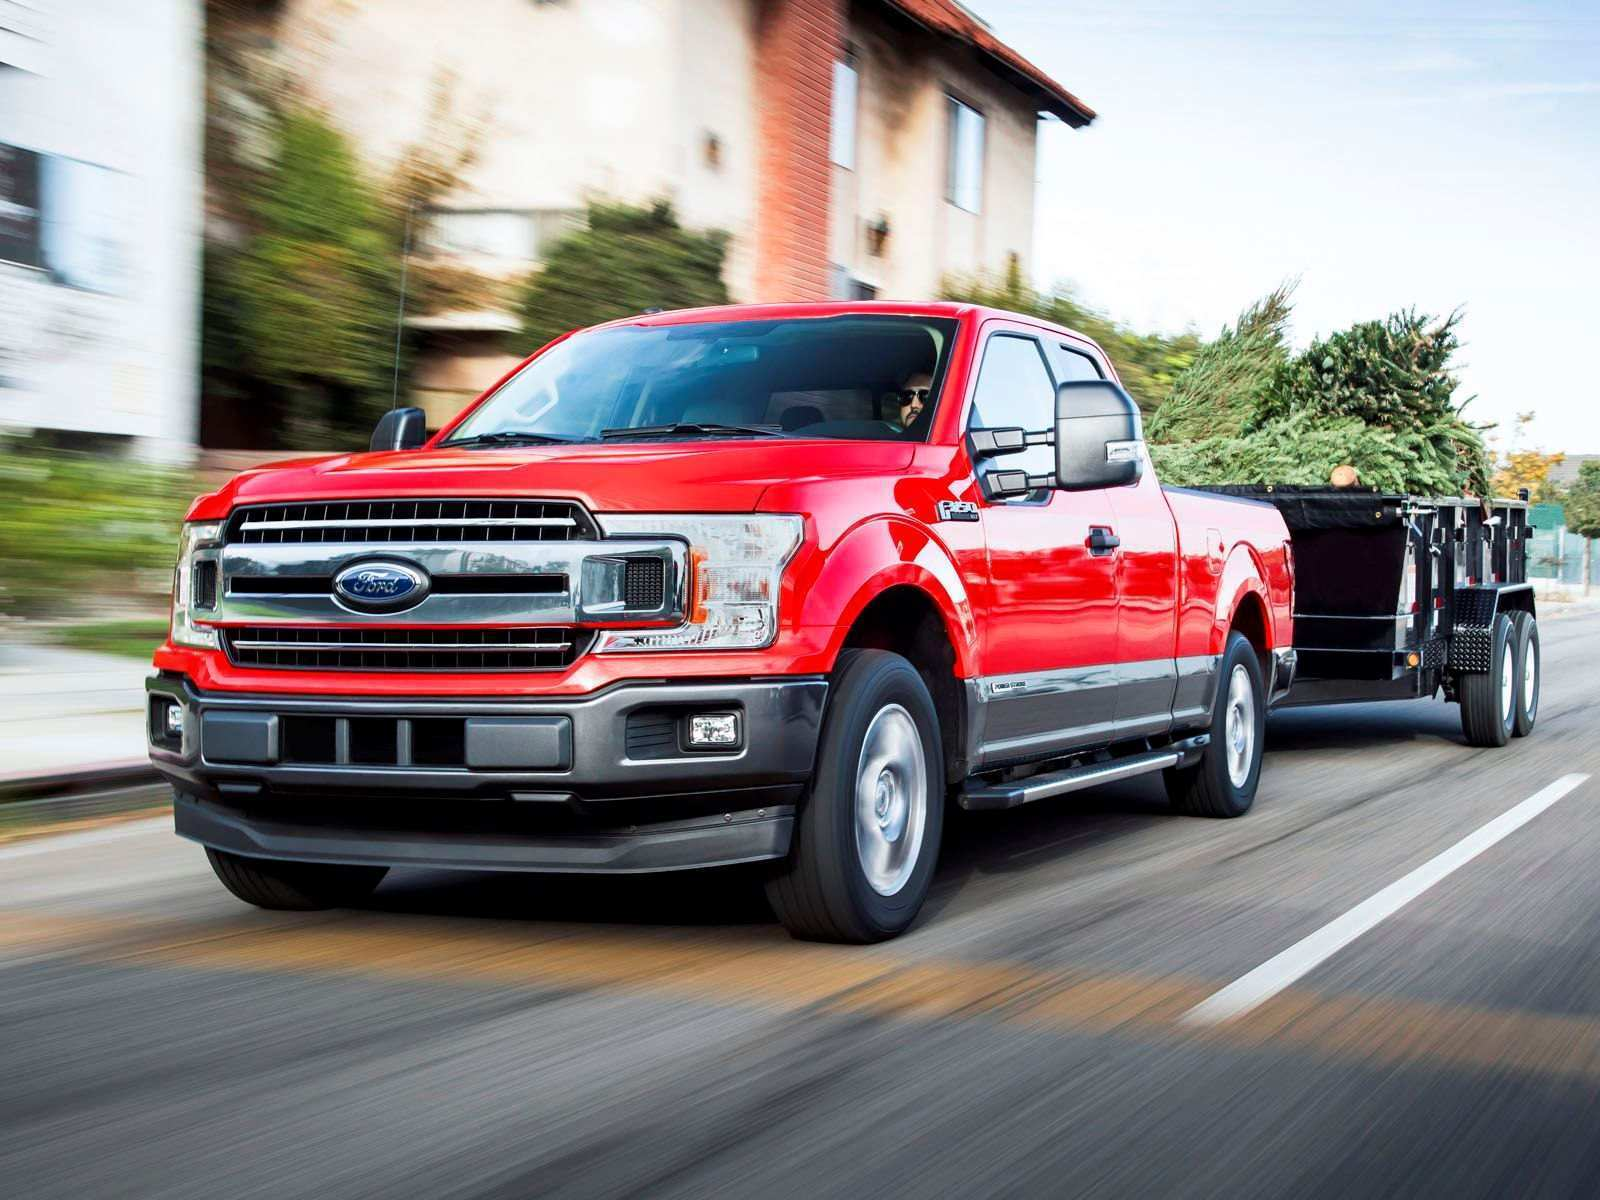 68 New 2019 Spy Shots Ford F350 Diesel Redesign And Review